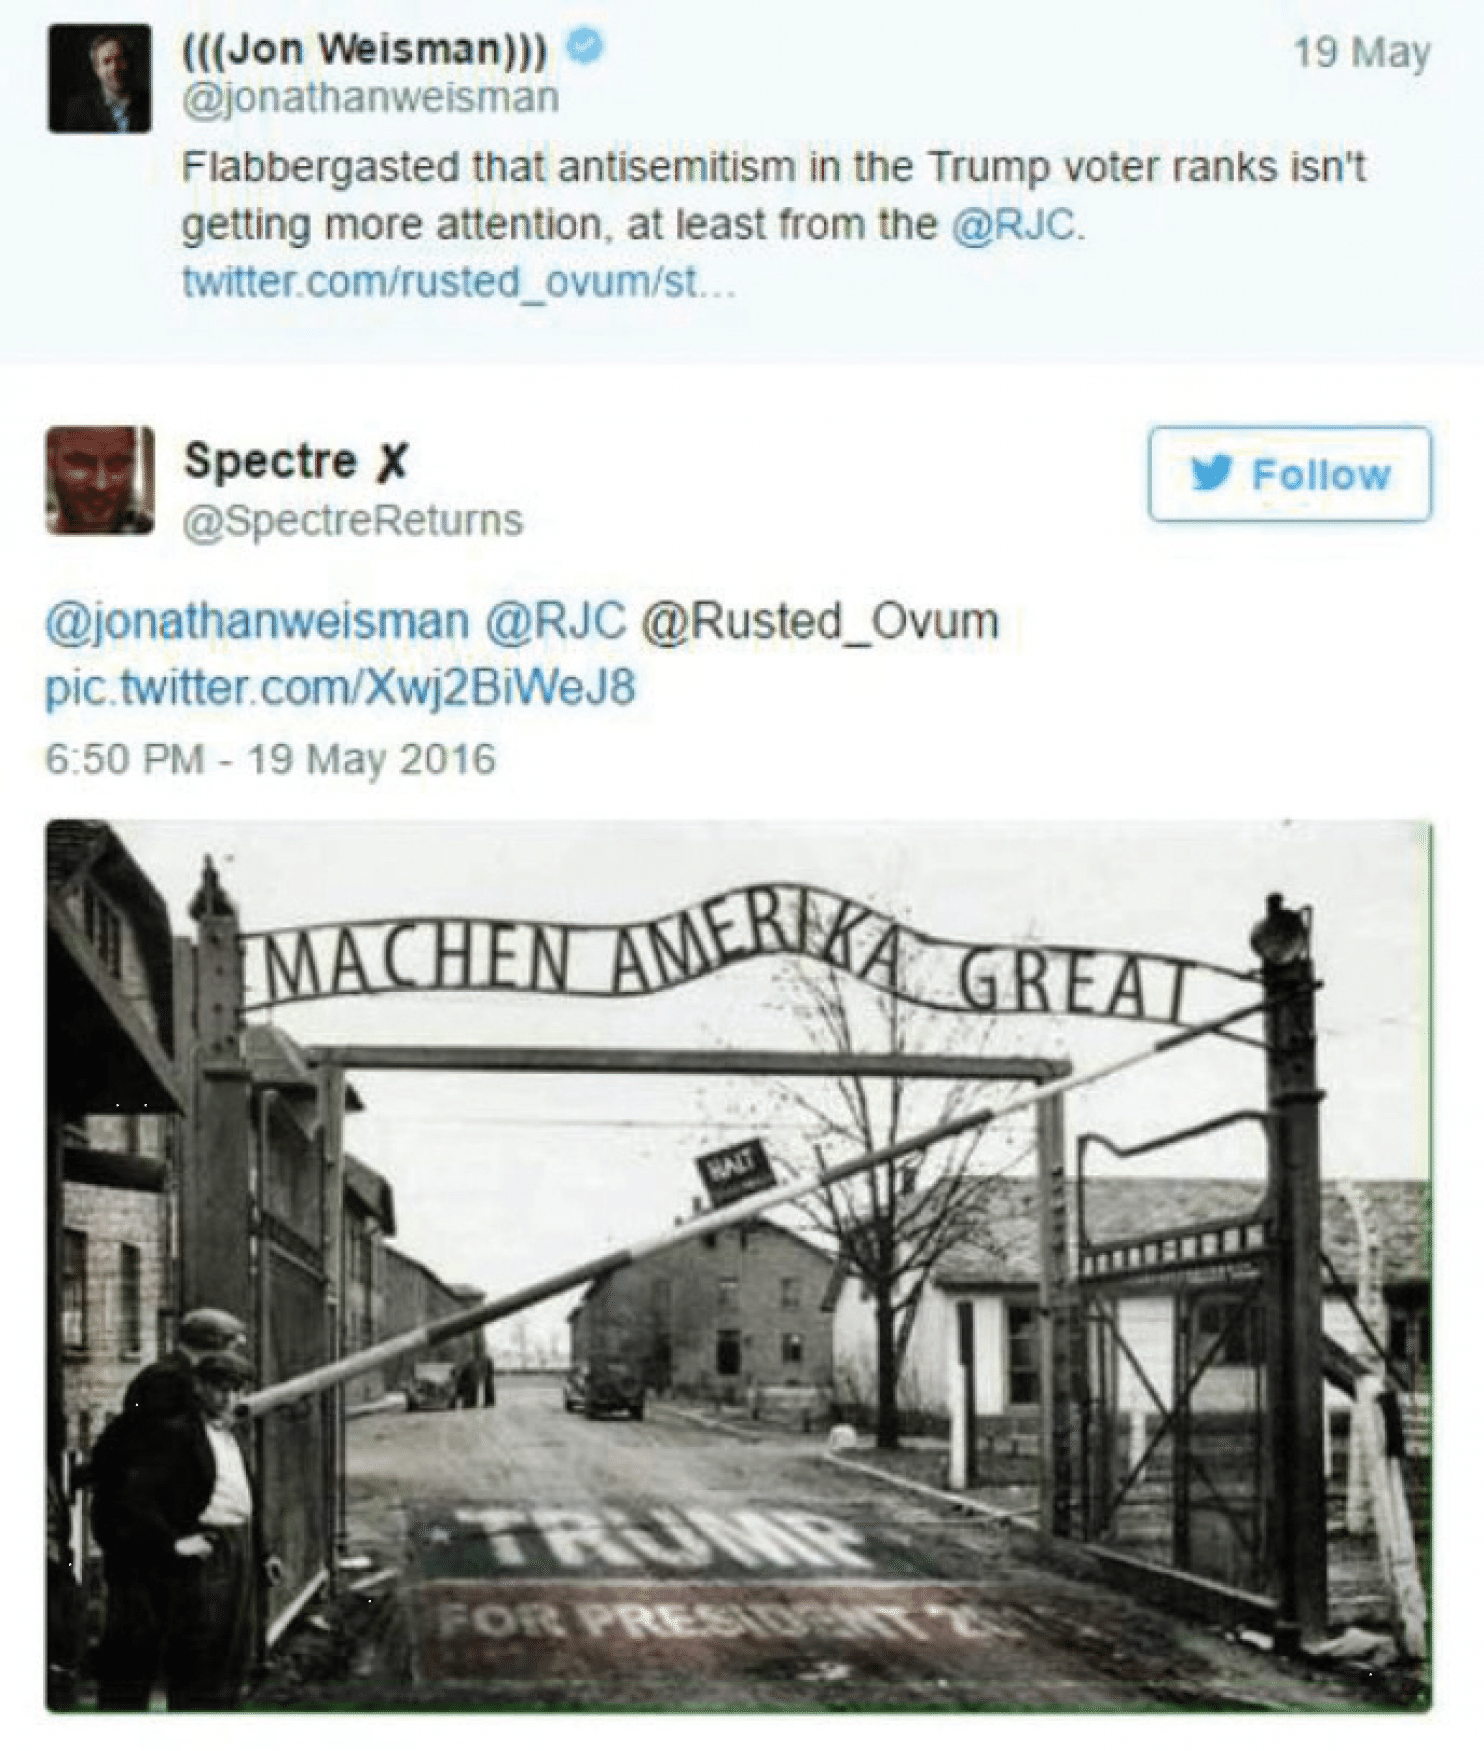 "The ADL report included this anti-Semitic tweet sent to a journalist: The gates of the Auschwitz concentration camp, modified to say ""Machen Amerika Great,"" with a Trump insignia printed underneath. (Credit: Washington Post)"